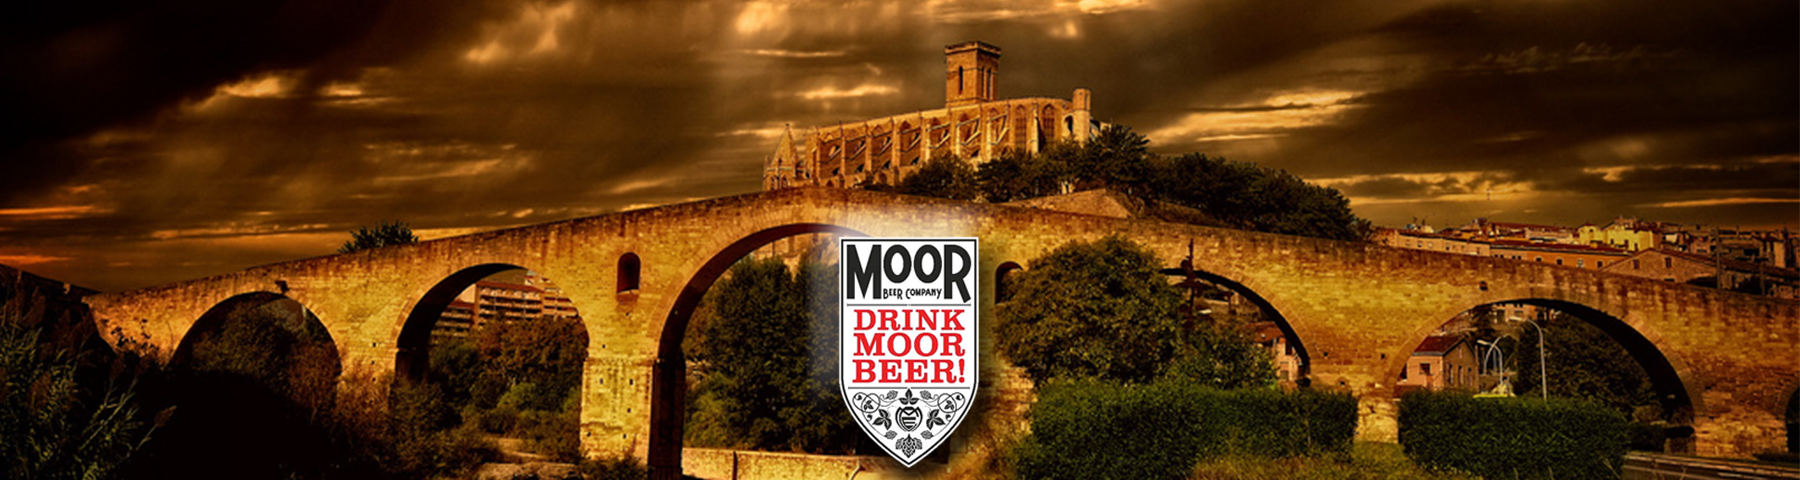 Manresa Moor Beer Co.